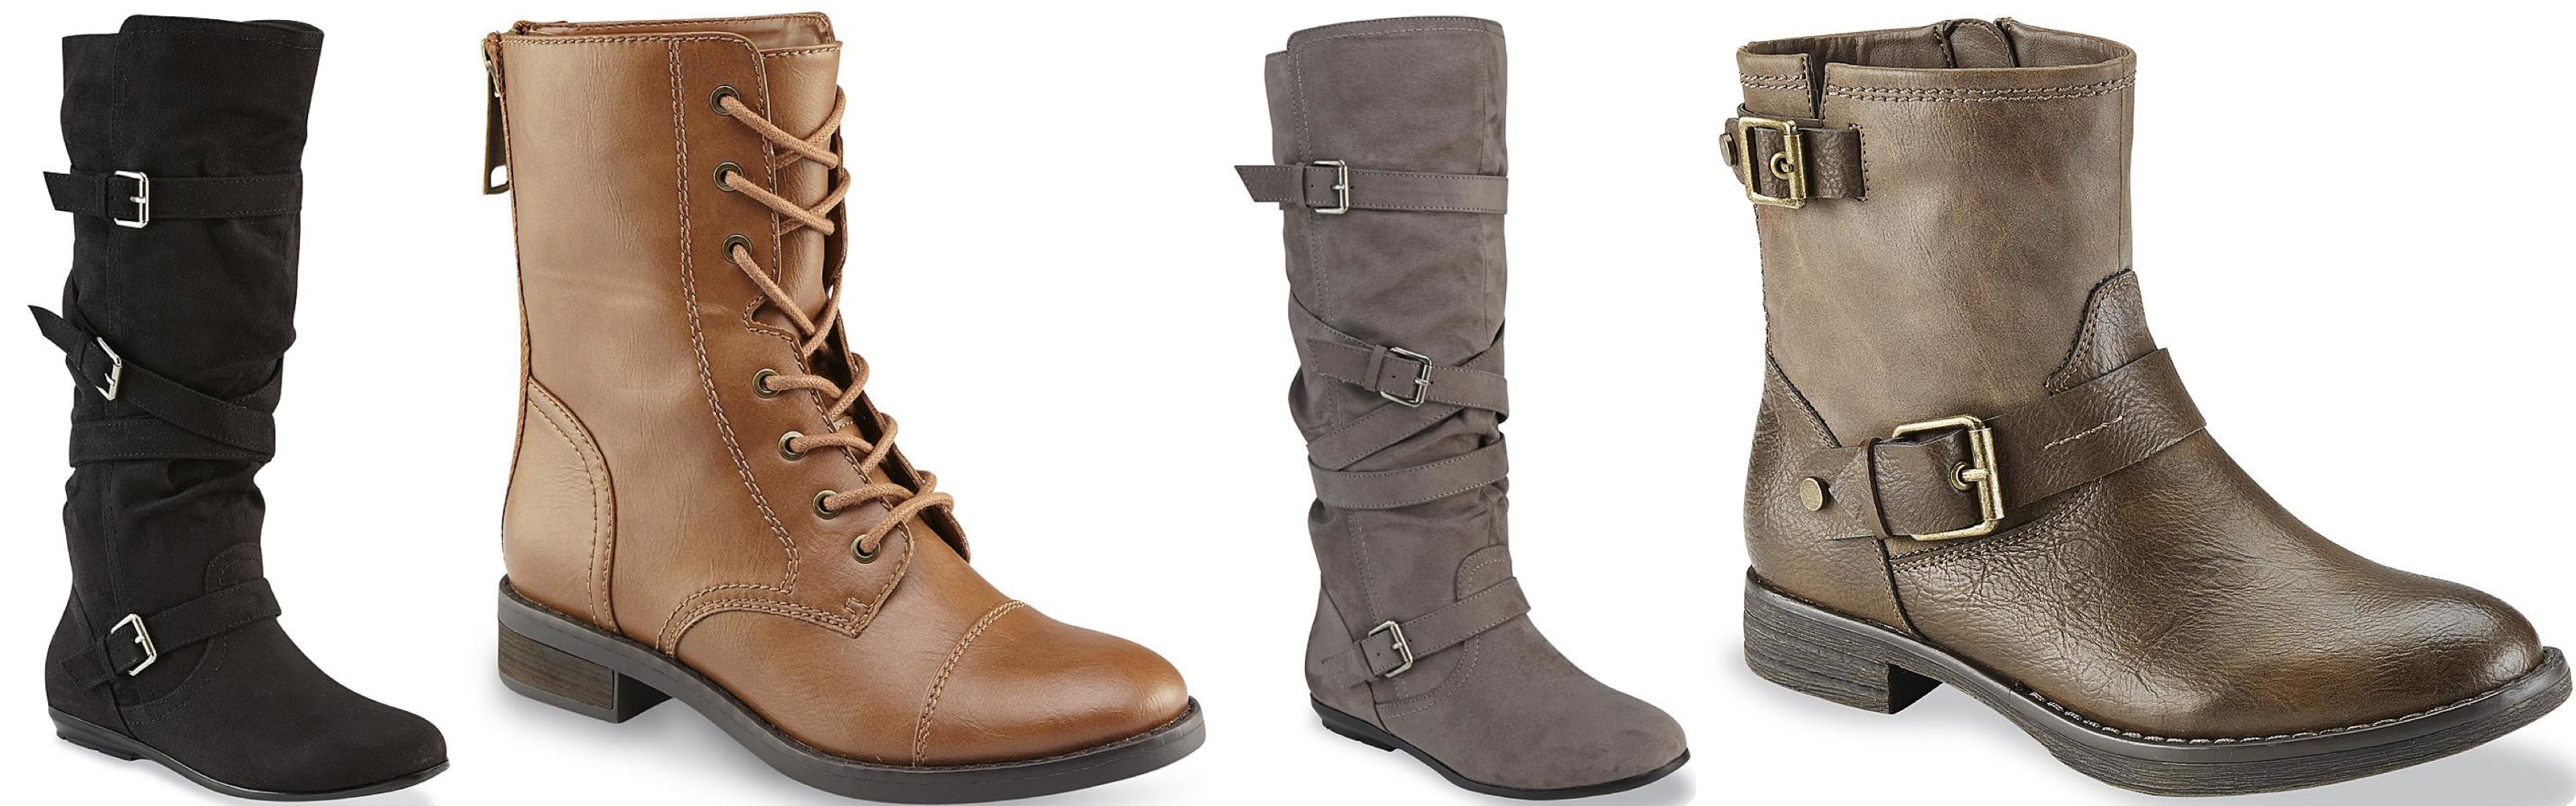 Sears.com: Up to 70% Off Women's Boots